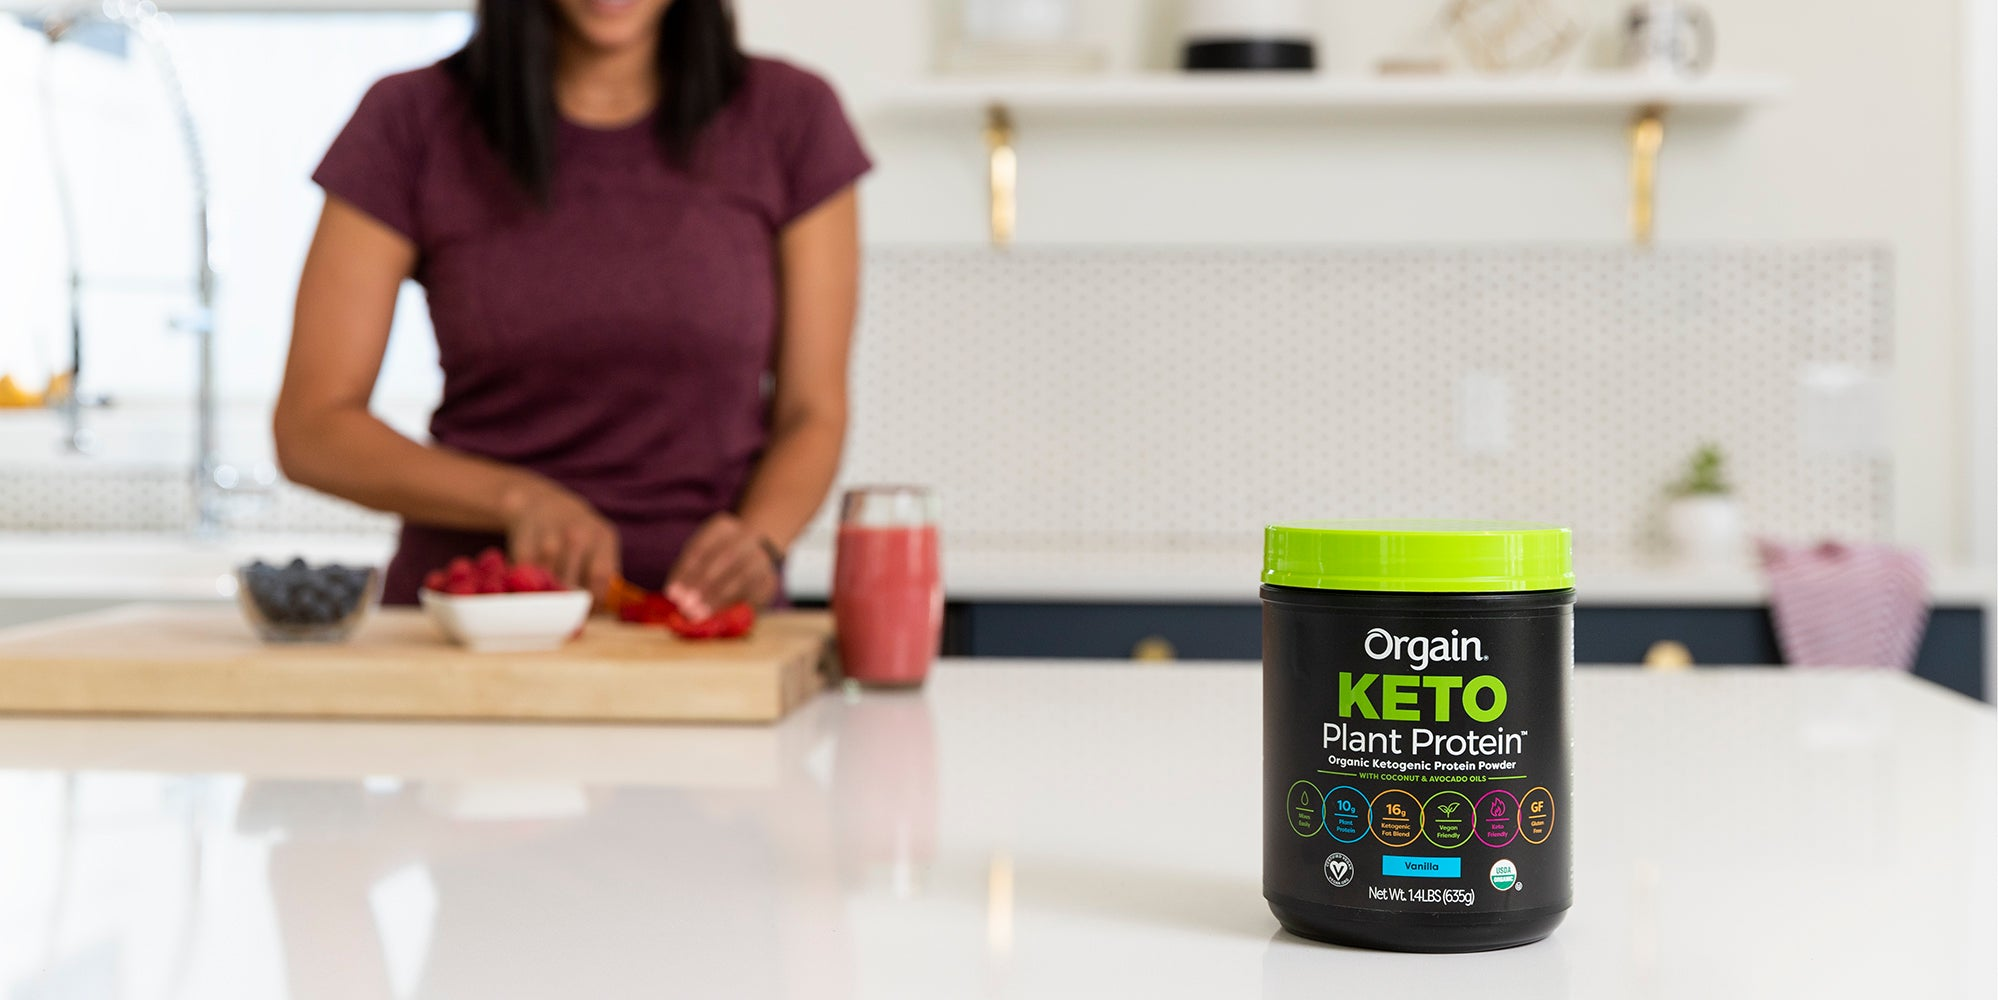 Introducing the NEW Orgain Keto Plant Protein Powder